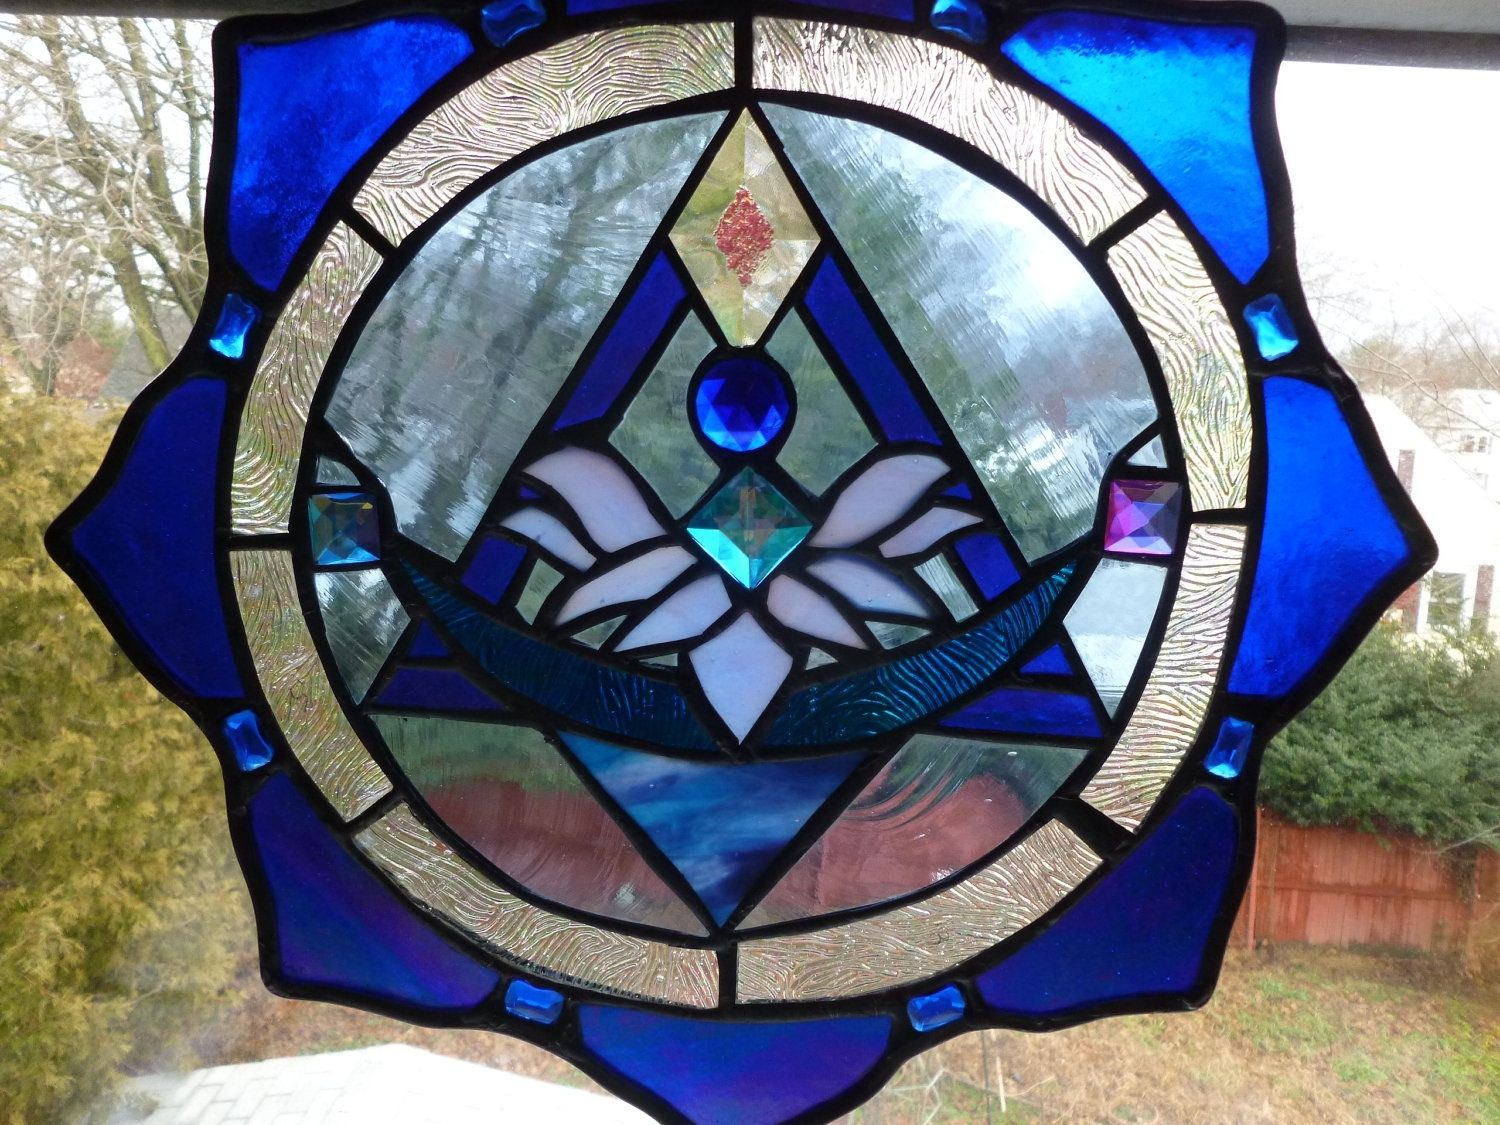 Buy A Handmade Bright Blue Stained Glass Lotus Flower Pyramid Made